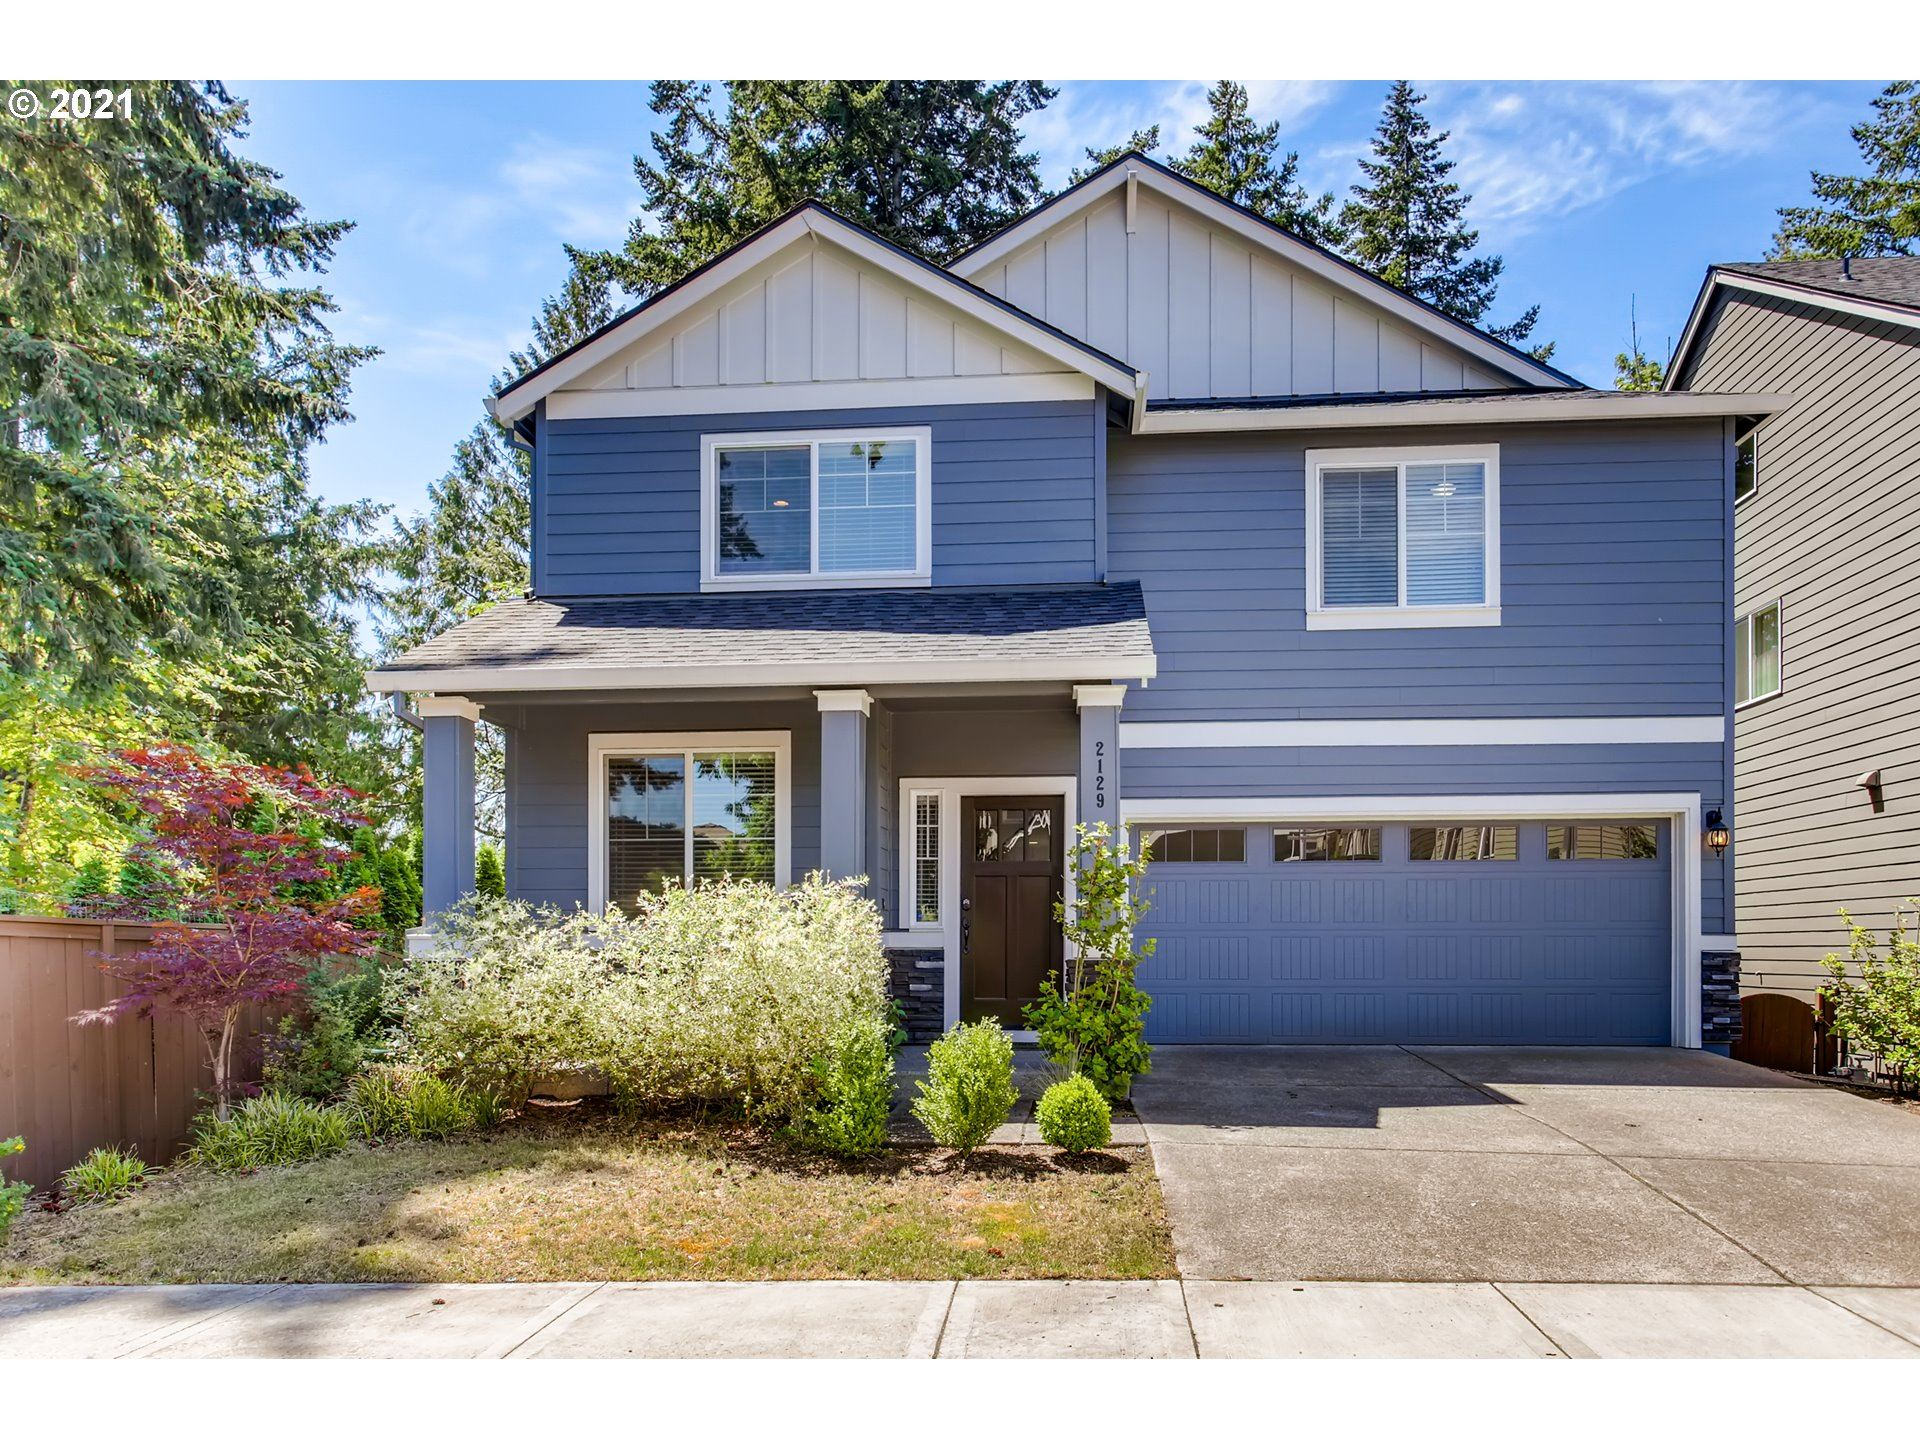 2129 NW 115TH AVE, Portland, OR 97229 - MLS#: 21491735